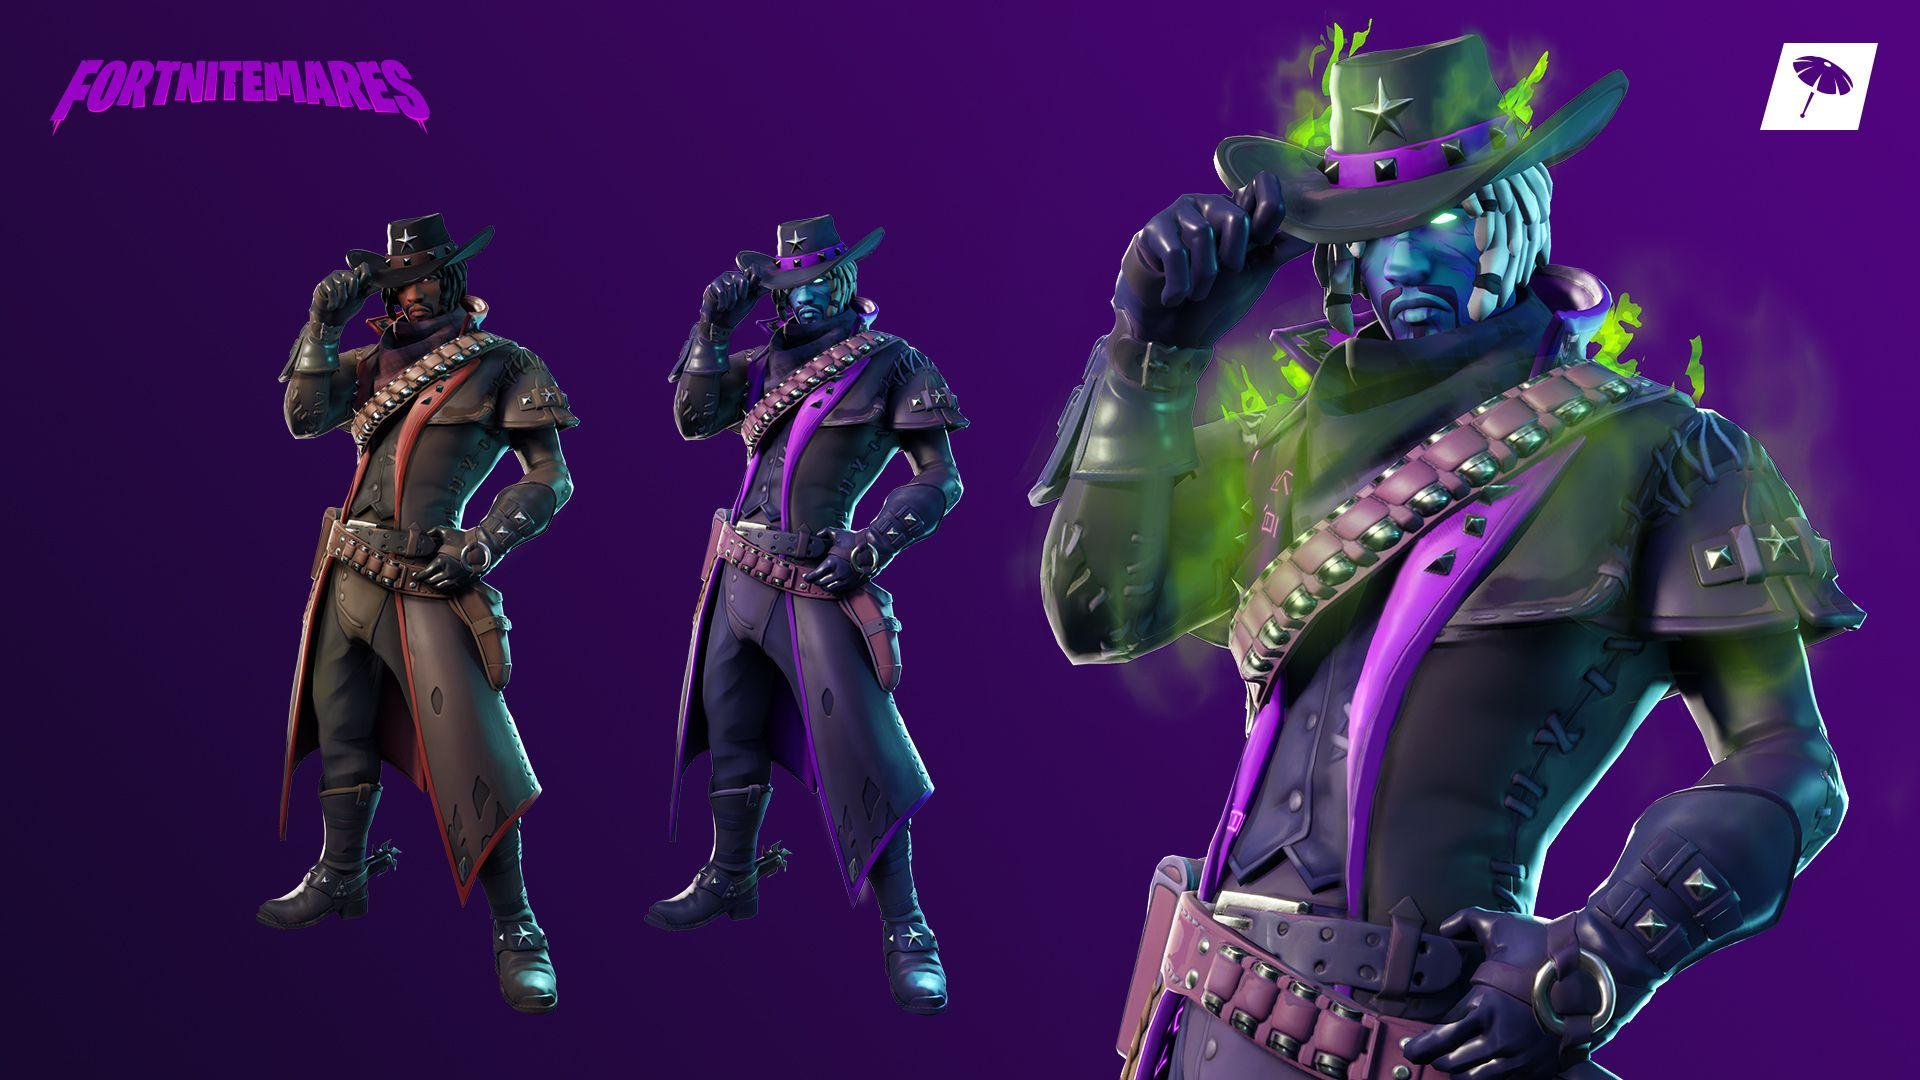 Fortnitemares 2018' event adds Halloween challenges and a new outfit